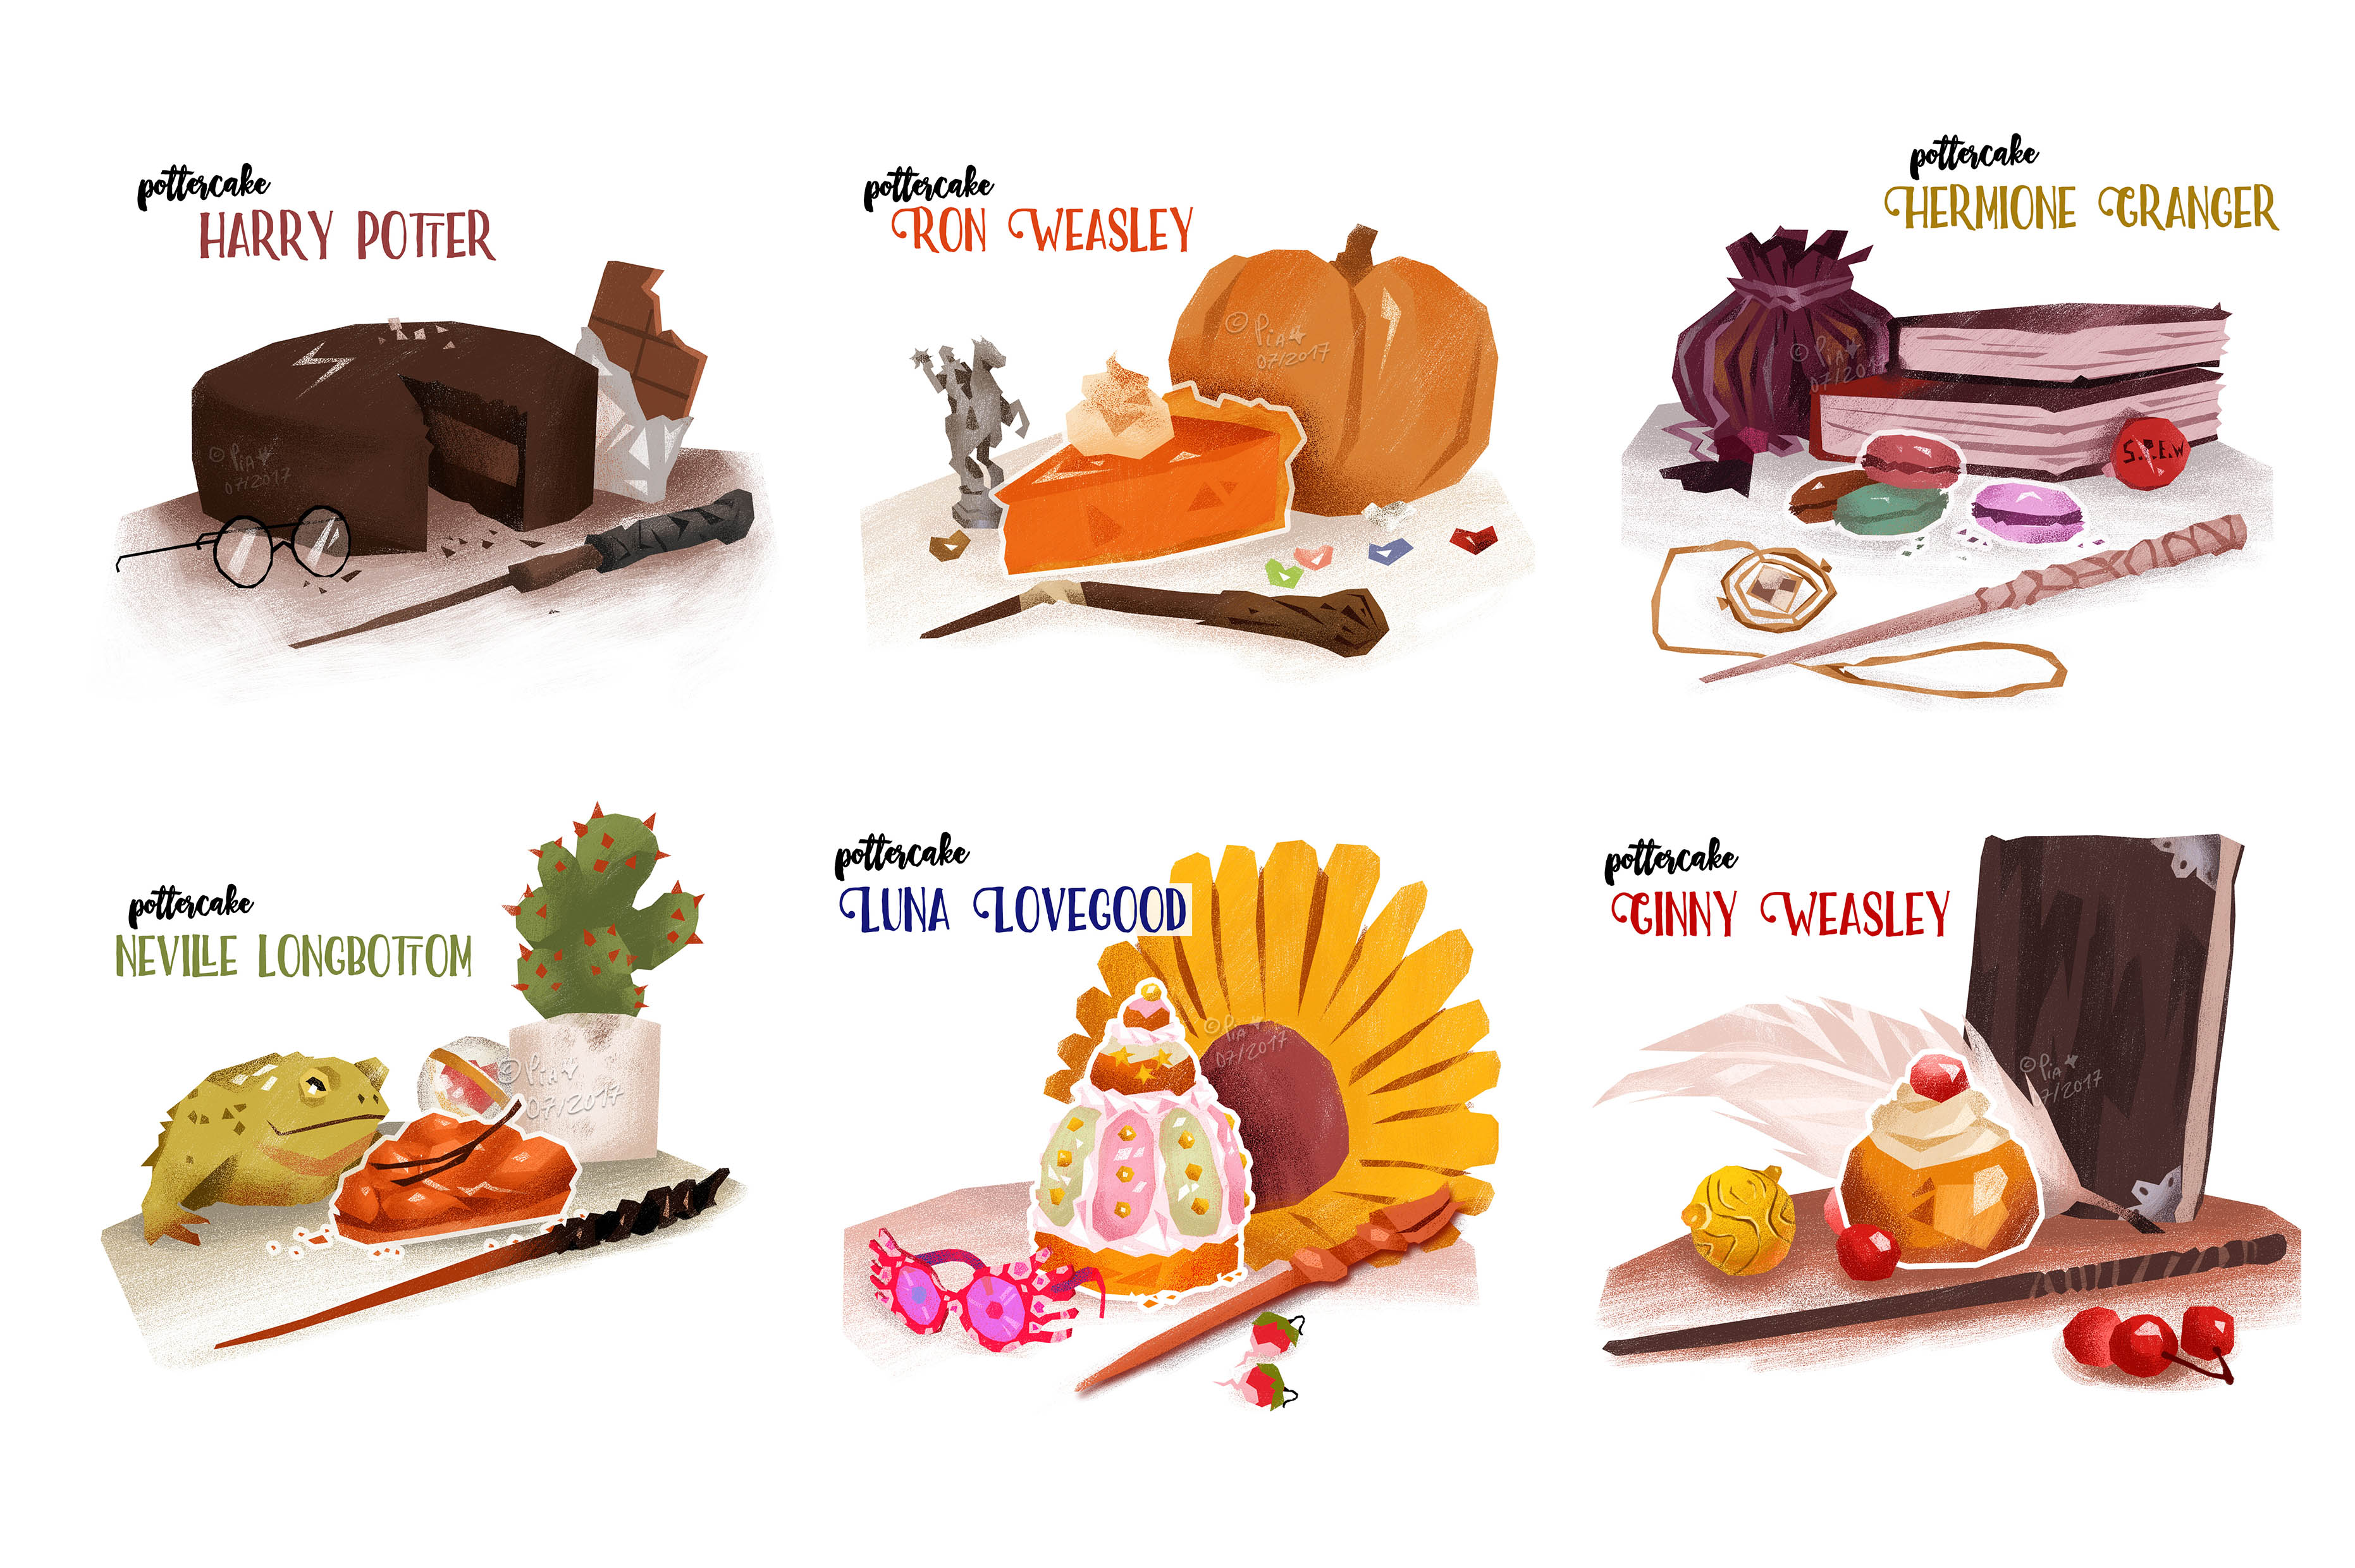 some cakes related to Harry Potter characters